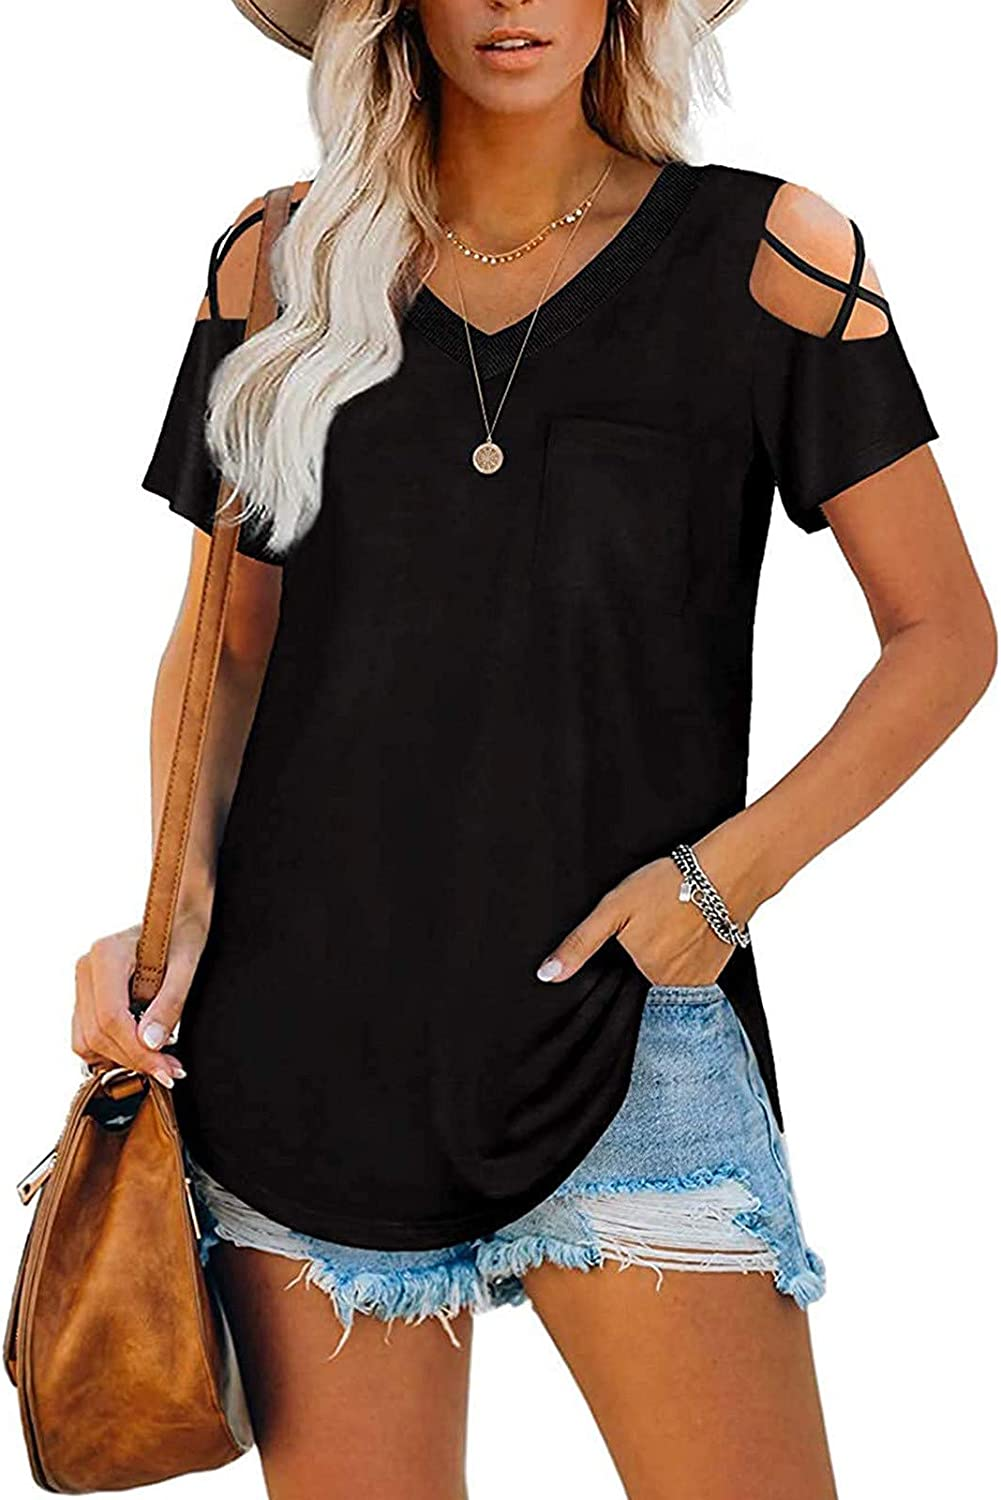 Aukbays Womens Tops Summer T Shirts Short Sleeve Tunic Strappy Cold Shoulder Shirts Solid Color with Pocket Tees Blouses